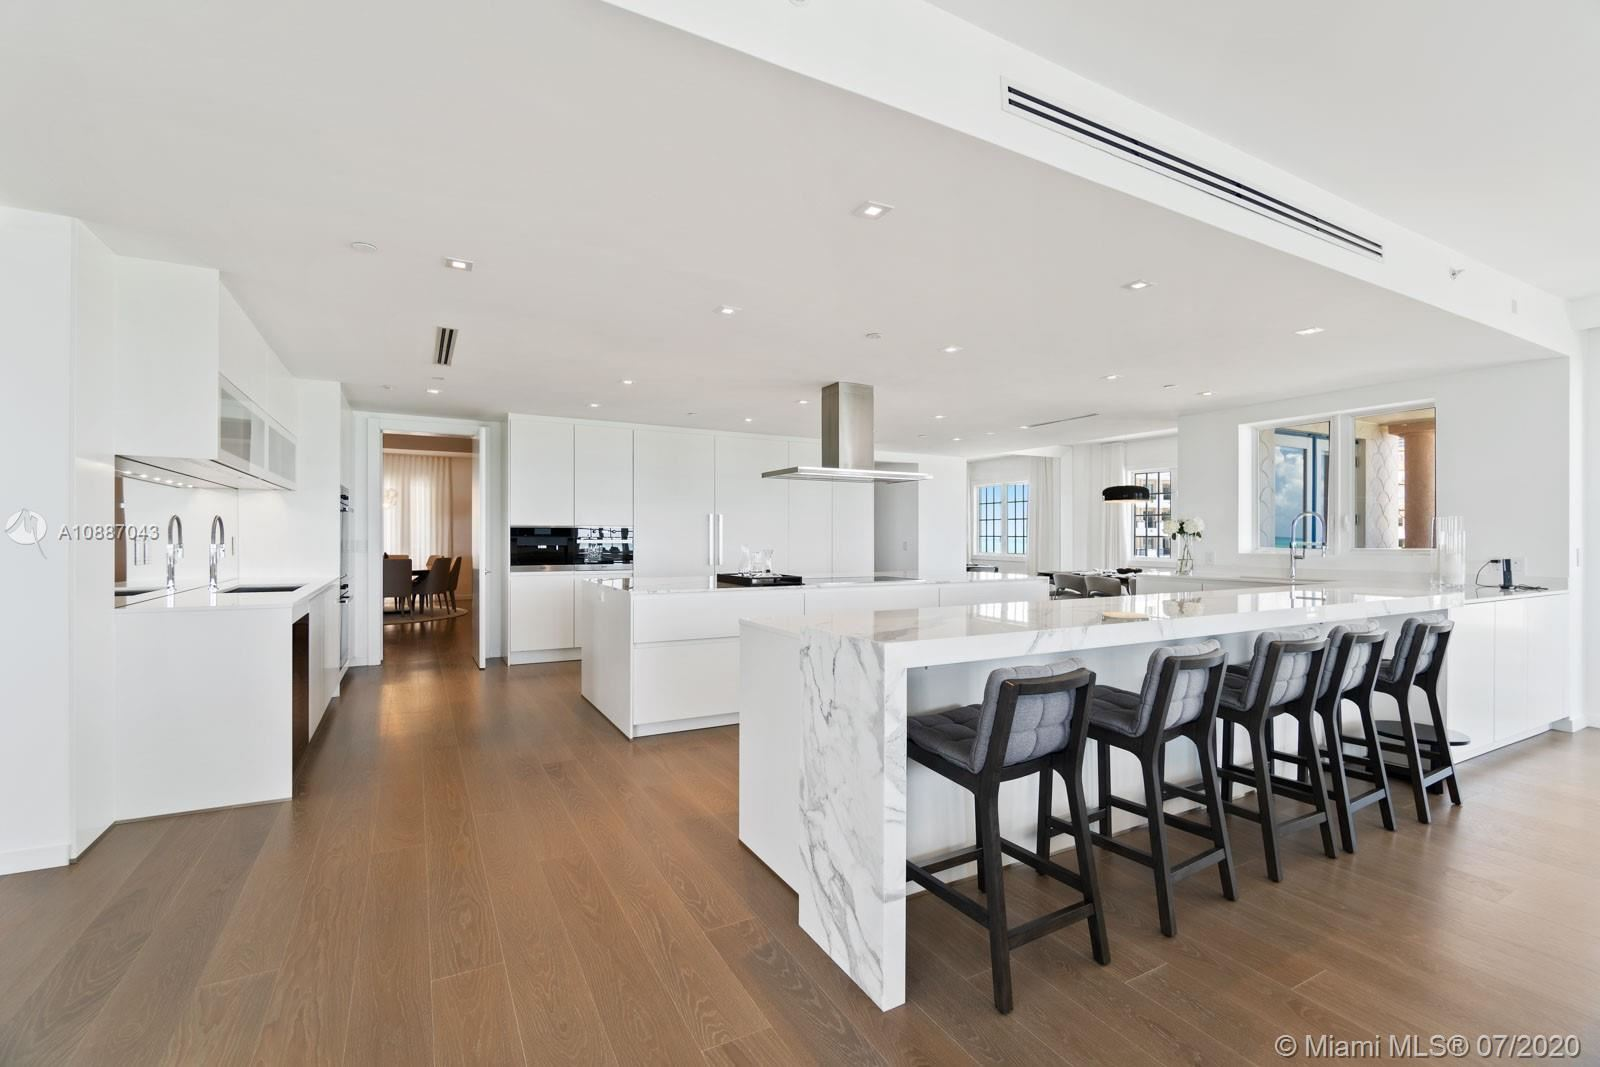 Photo 3 of Listing MLS a10887043 in 7764 Fisher Island Dr #7764 Miami Beach FL 33109